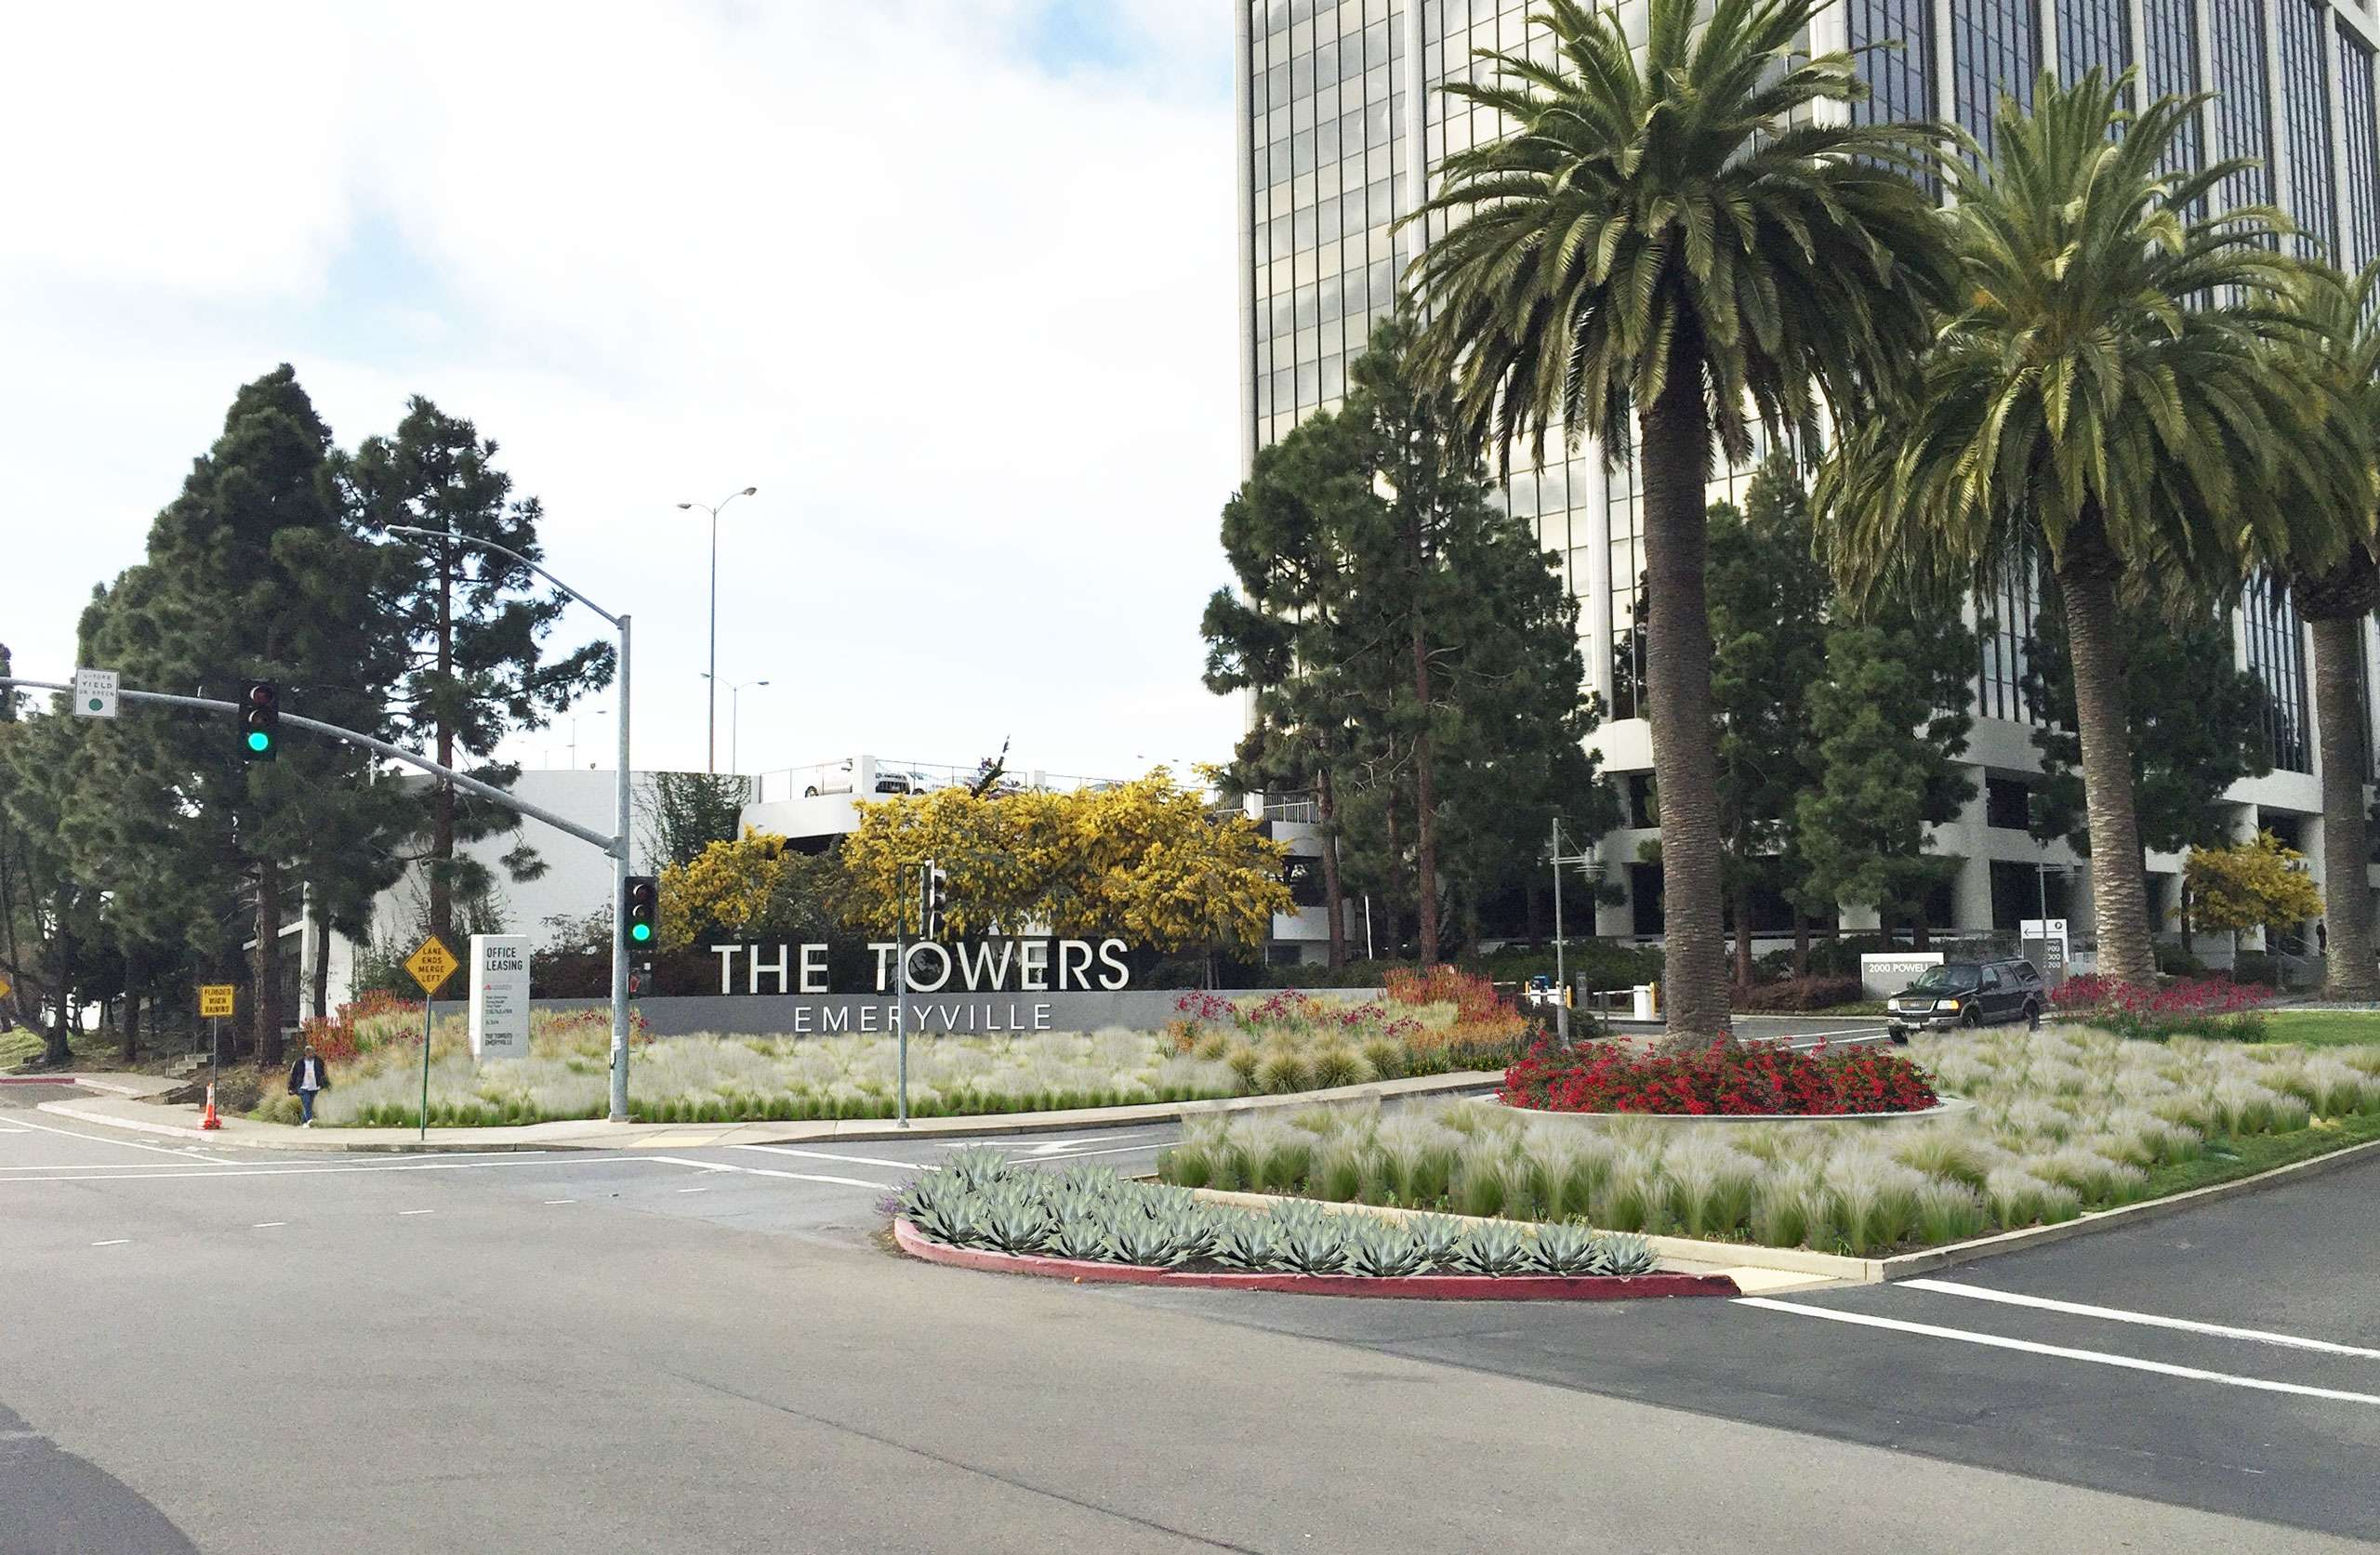 Towers at Emeryville